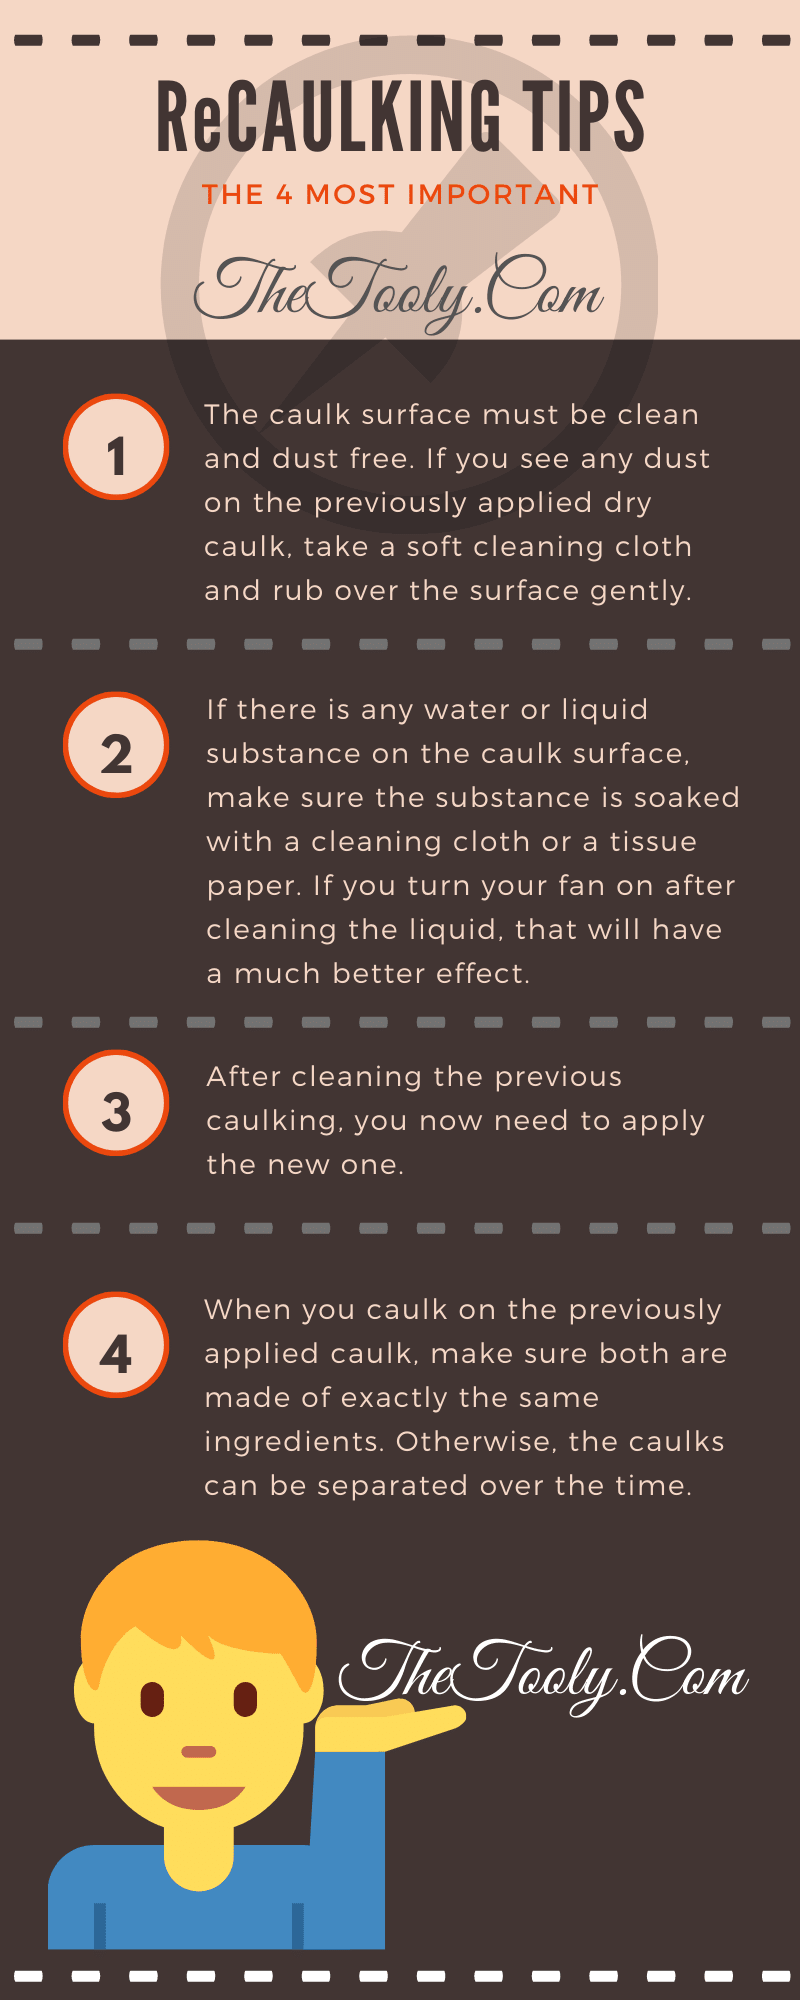 recaulking tips infographic